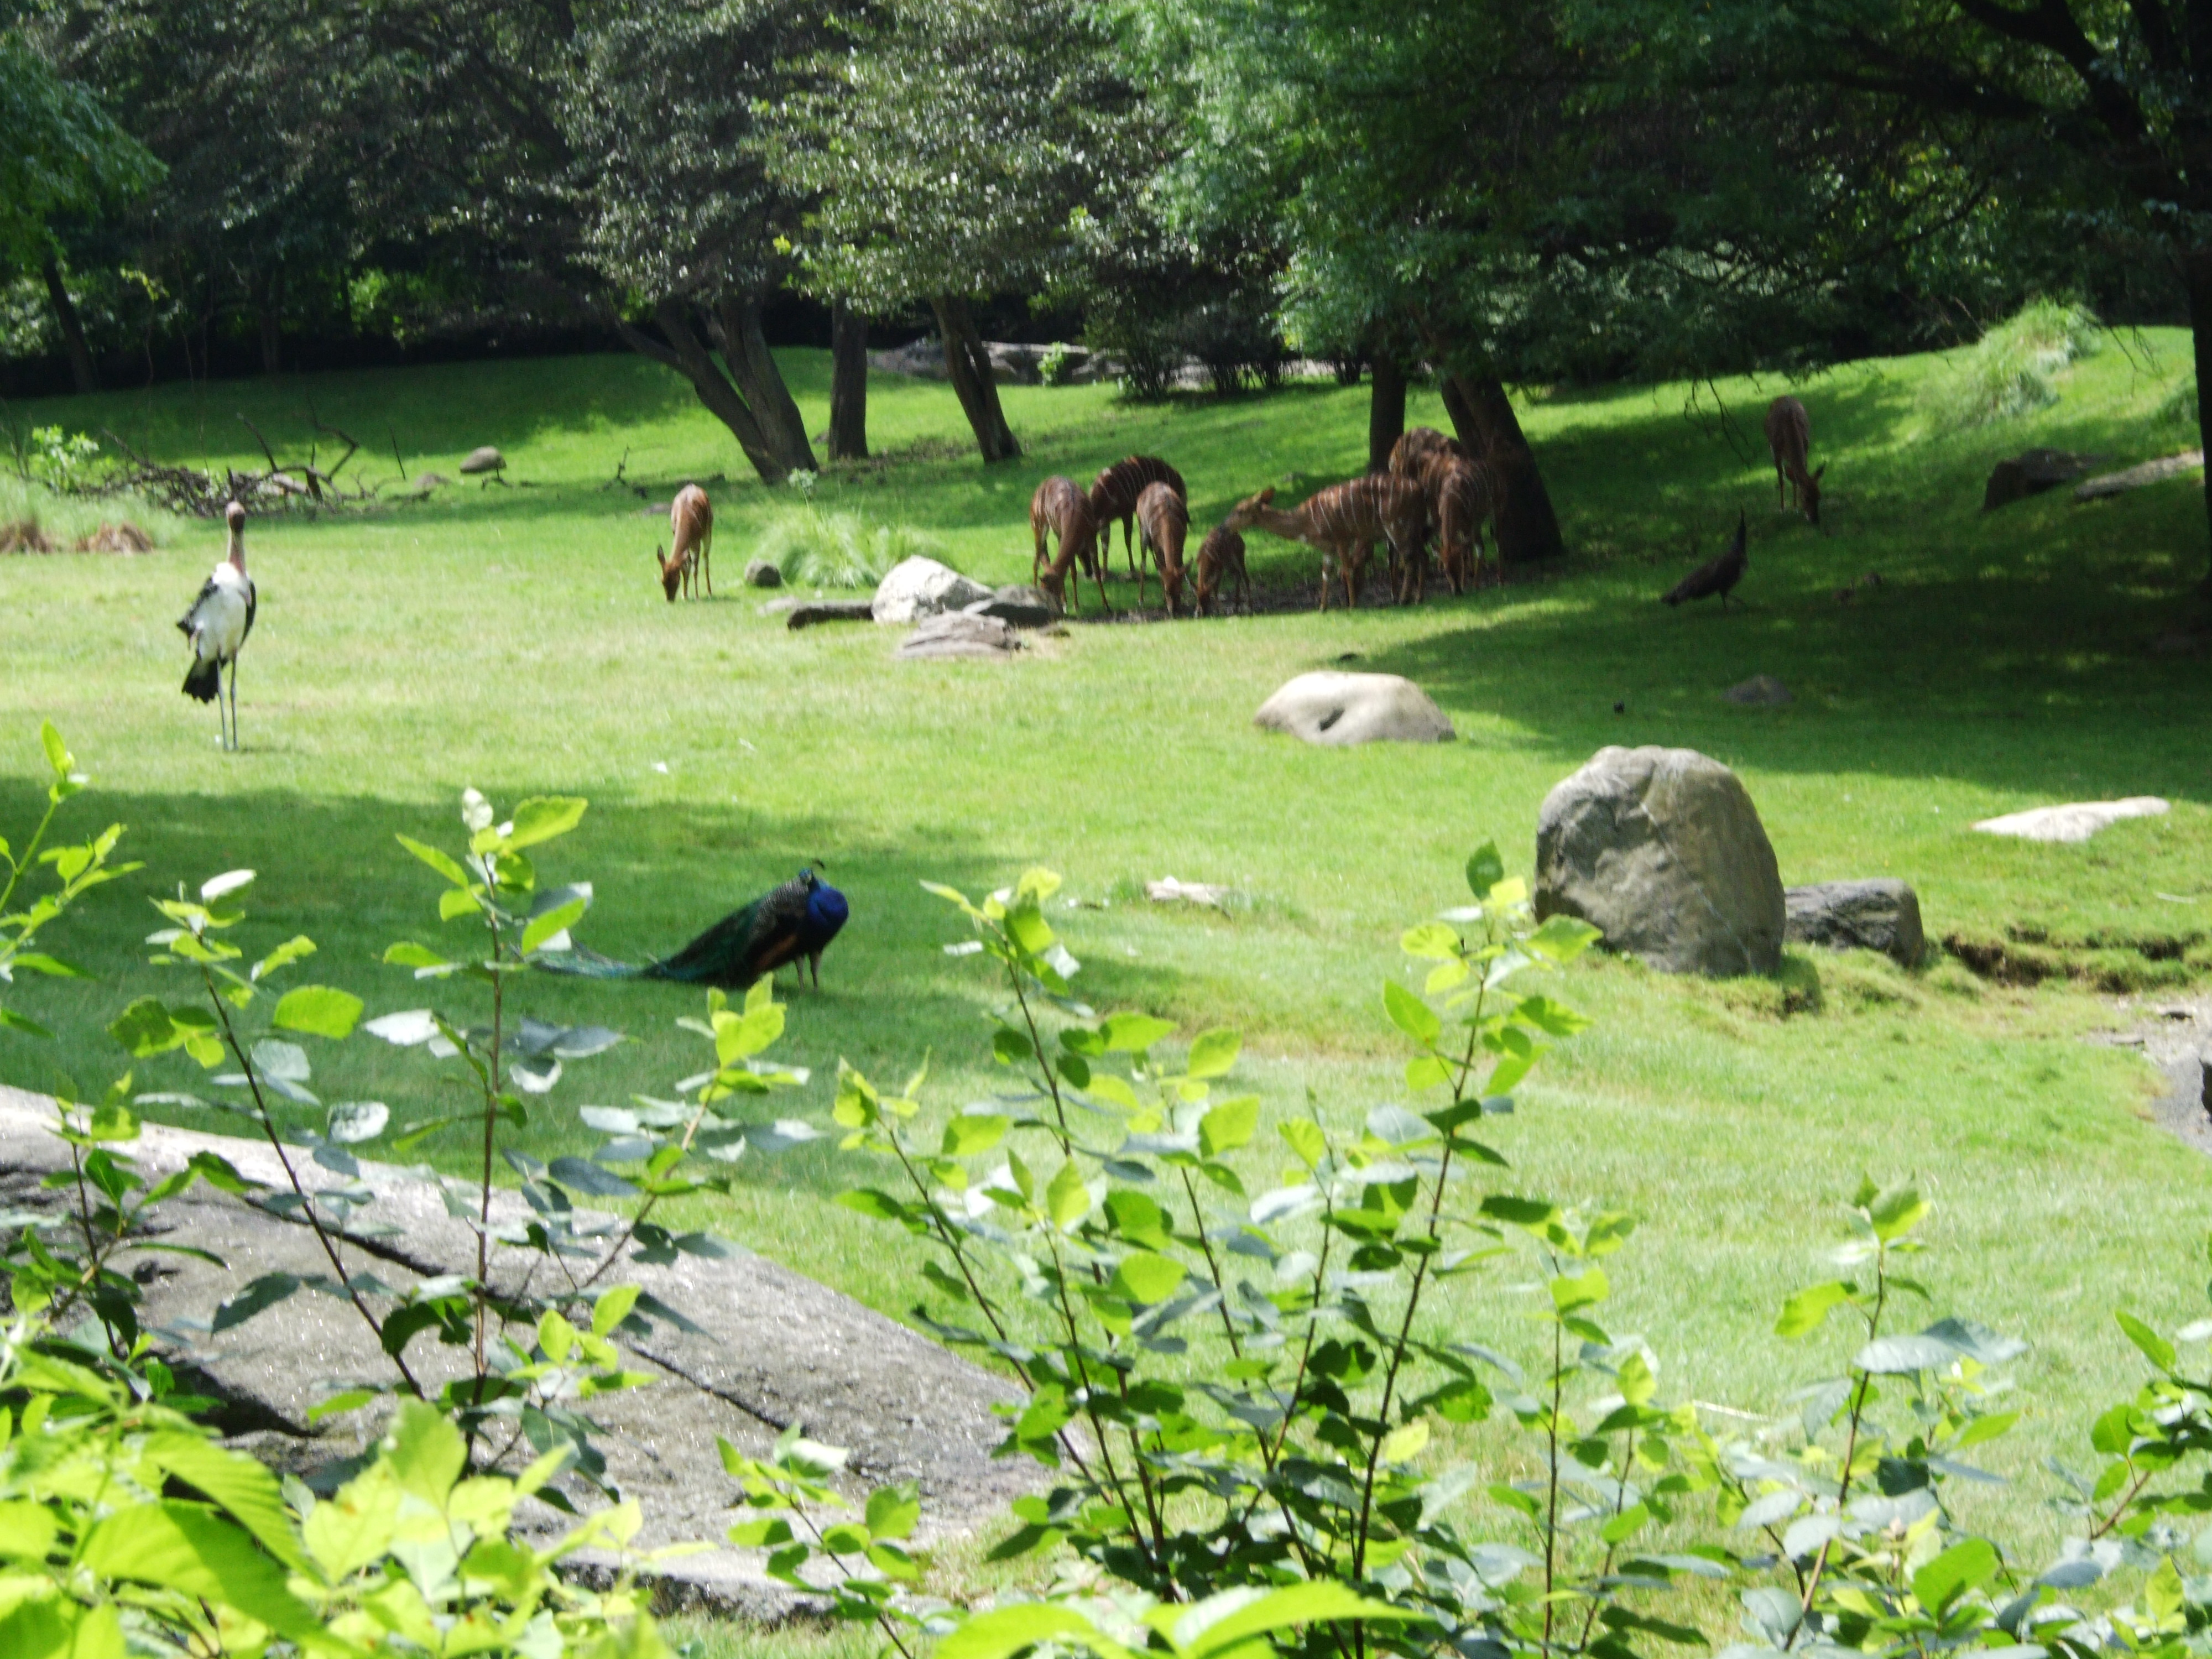 File:Bronx Zoo 102.JPG - Wikipedia, the free encyclopedia